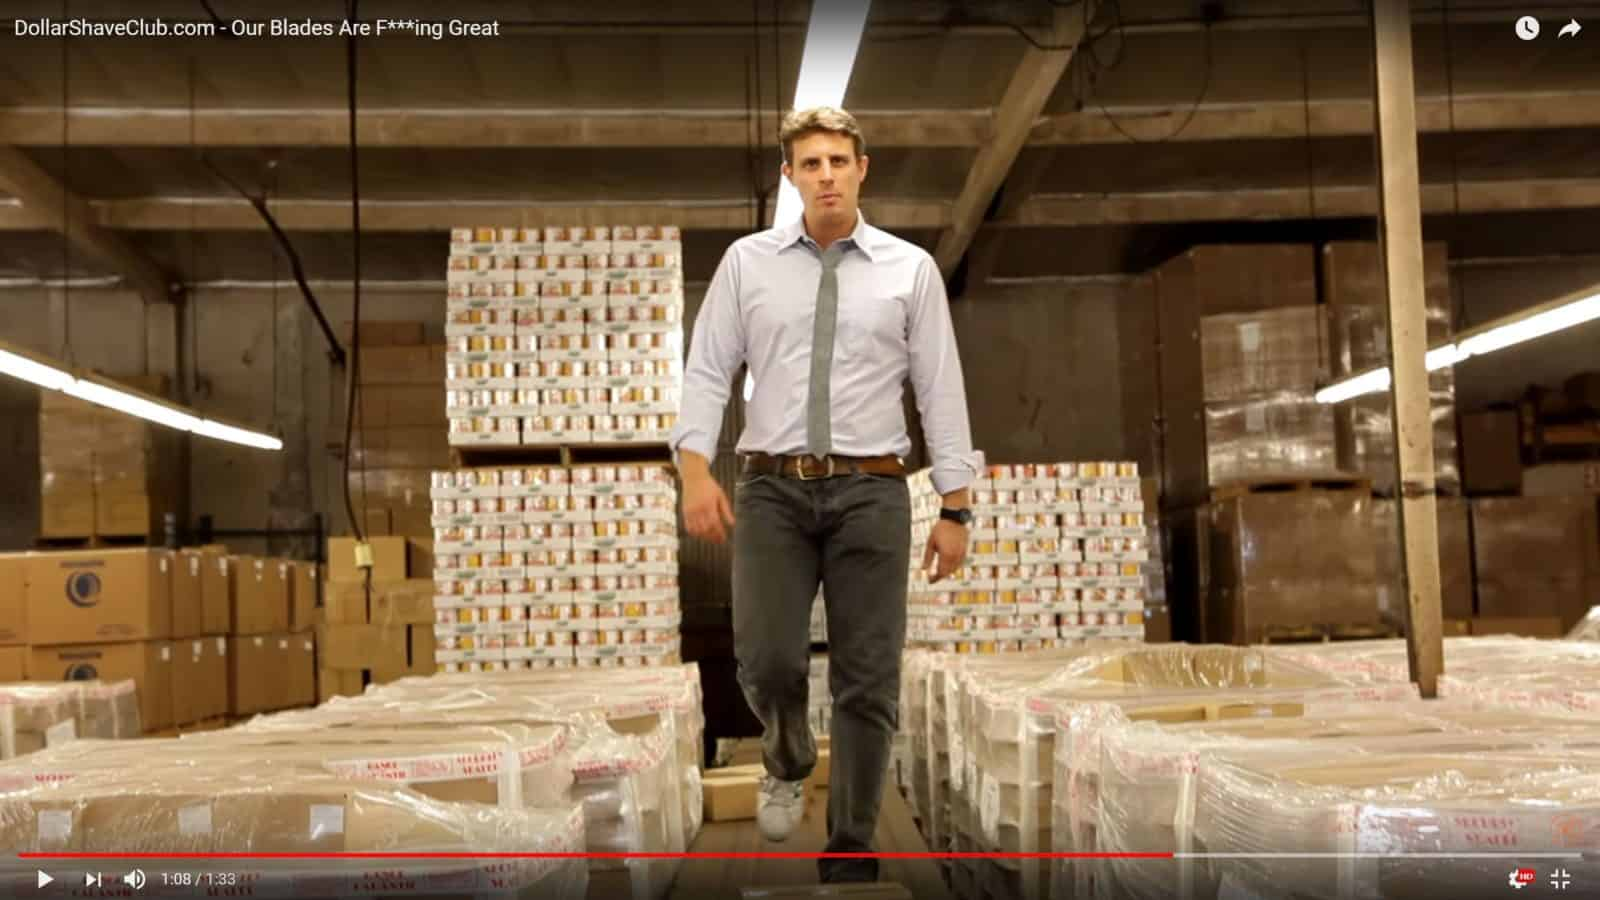 Dollar Shave Club Warehouse